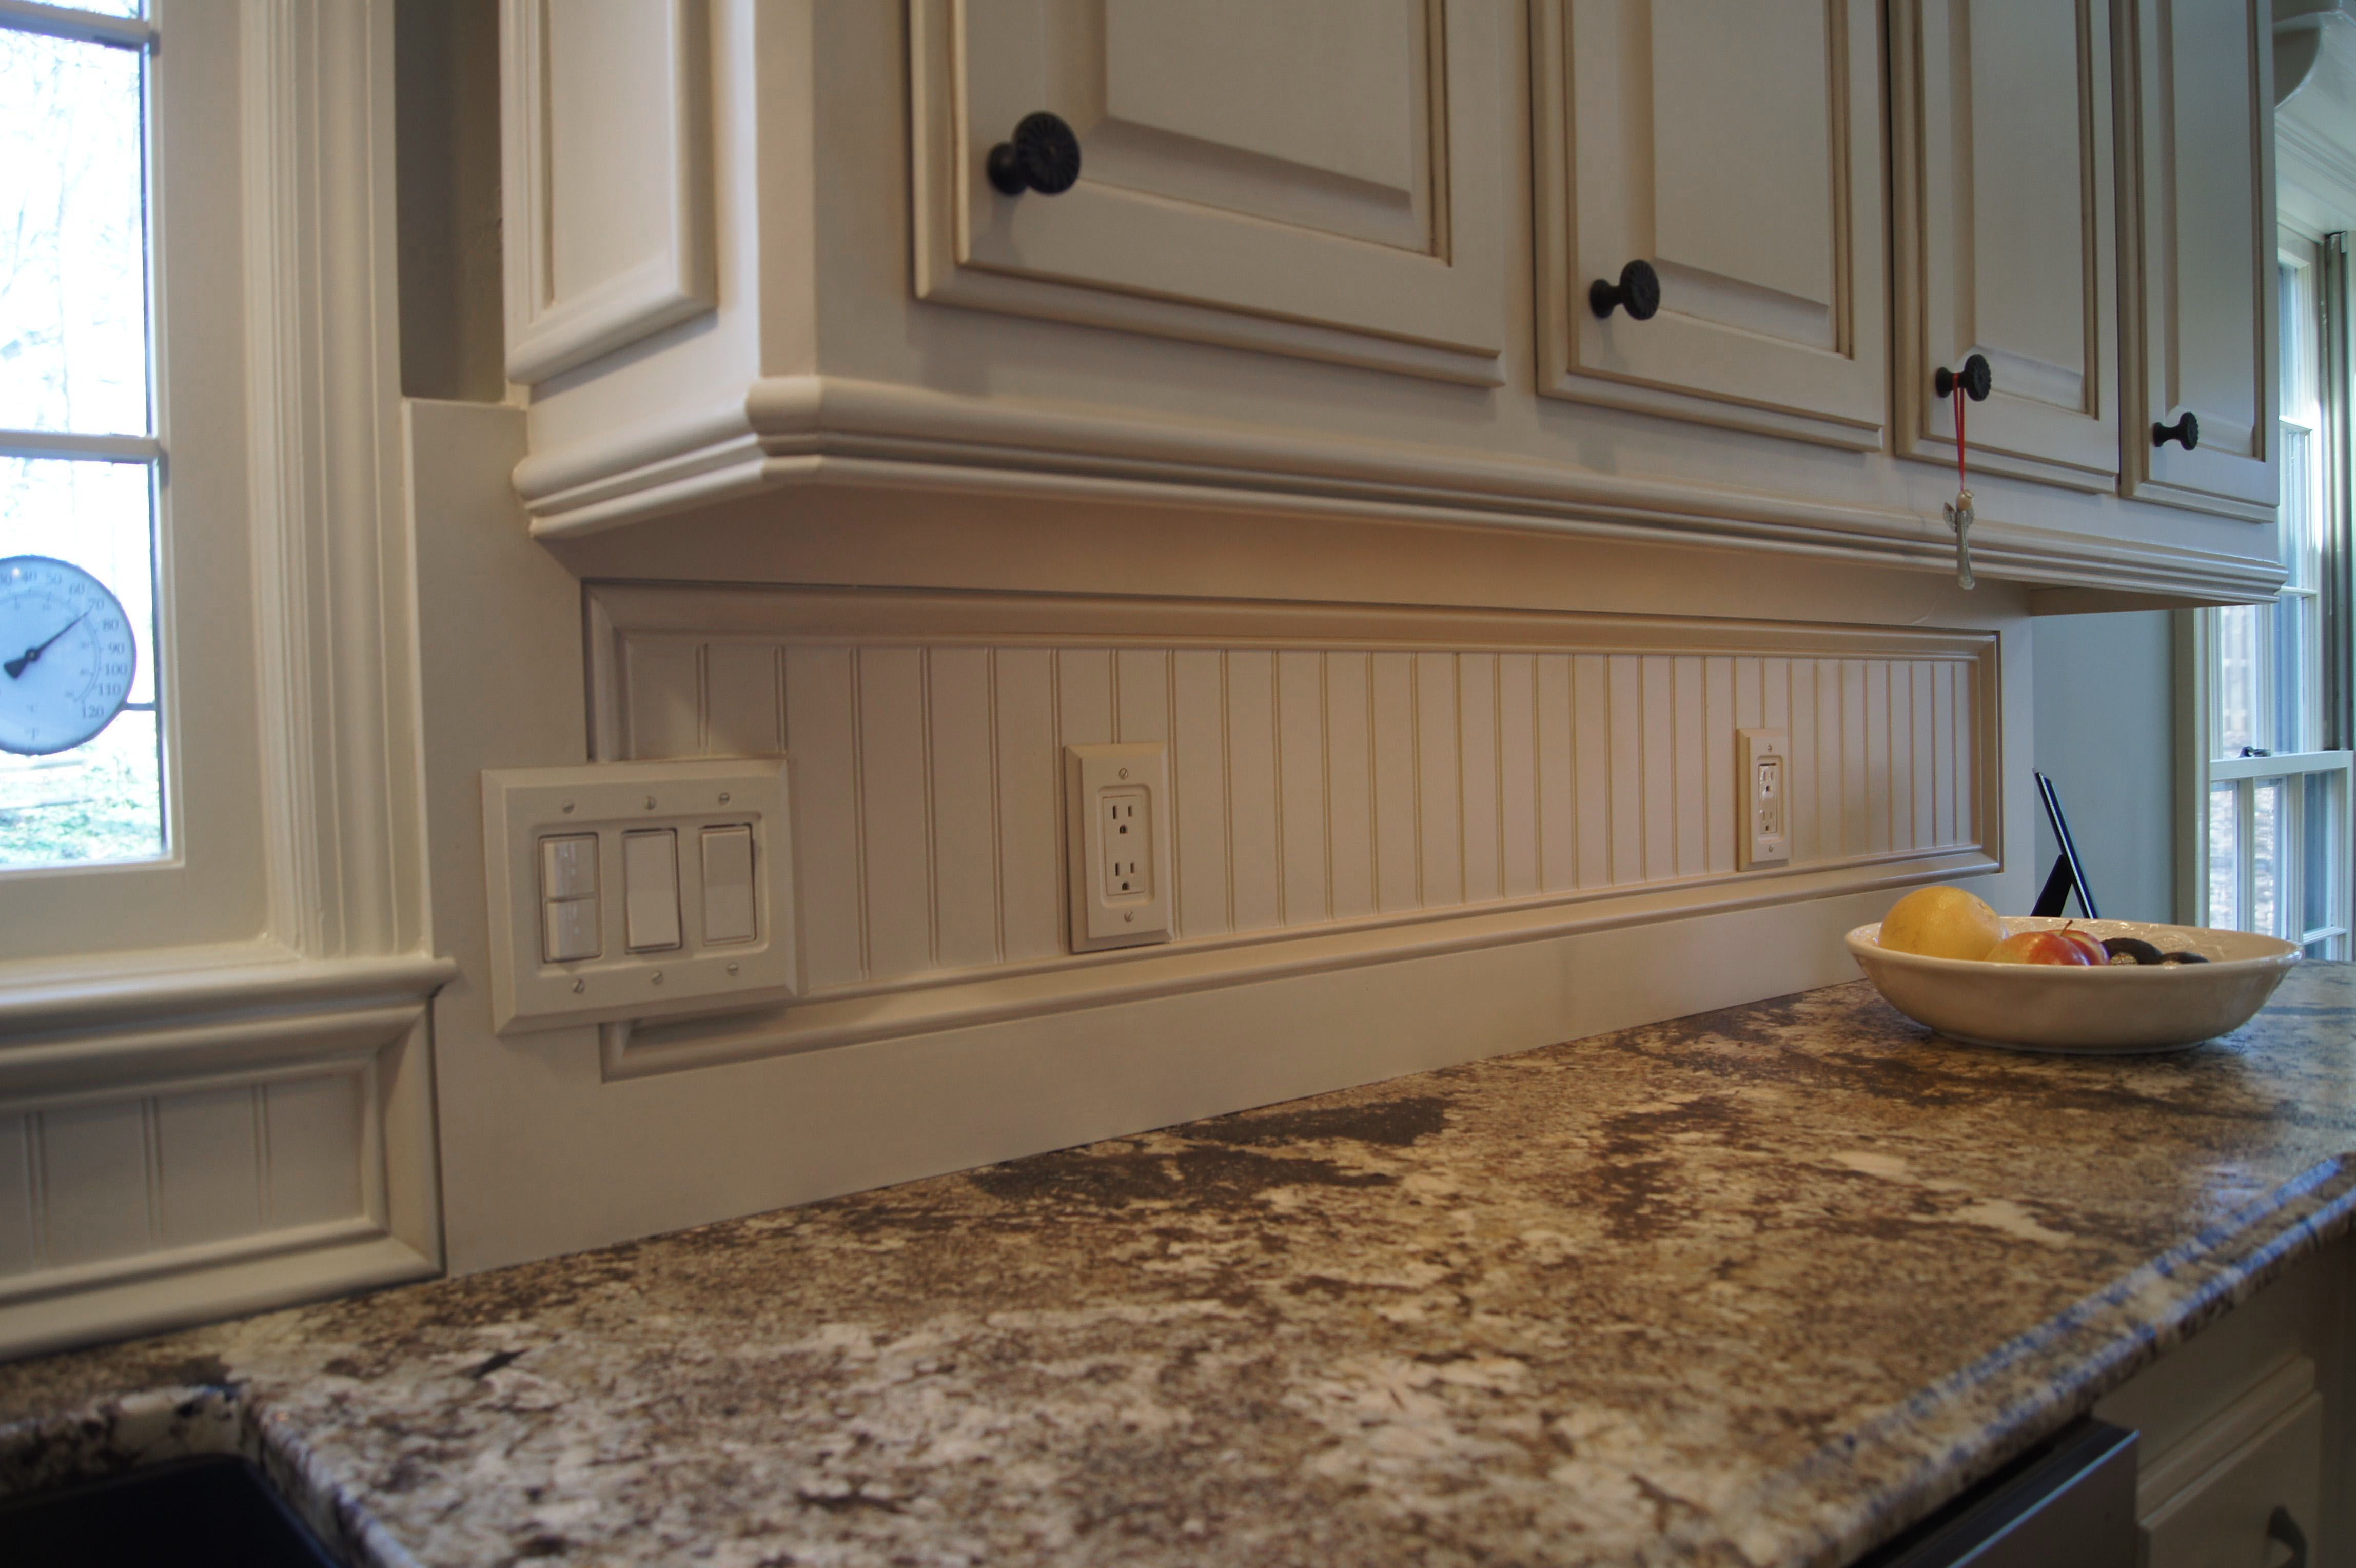 White Beadboard Kitchen Cabinets Check Out The Beadboard Backsplash Also Light Rail